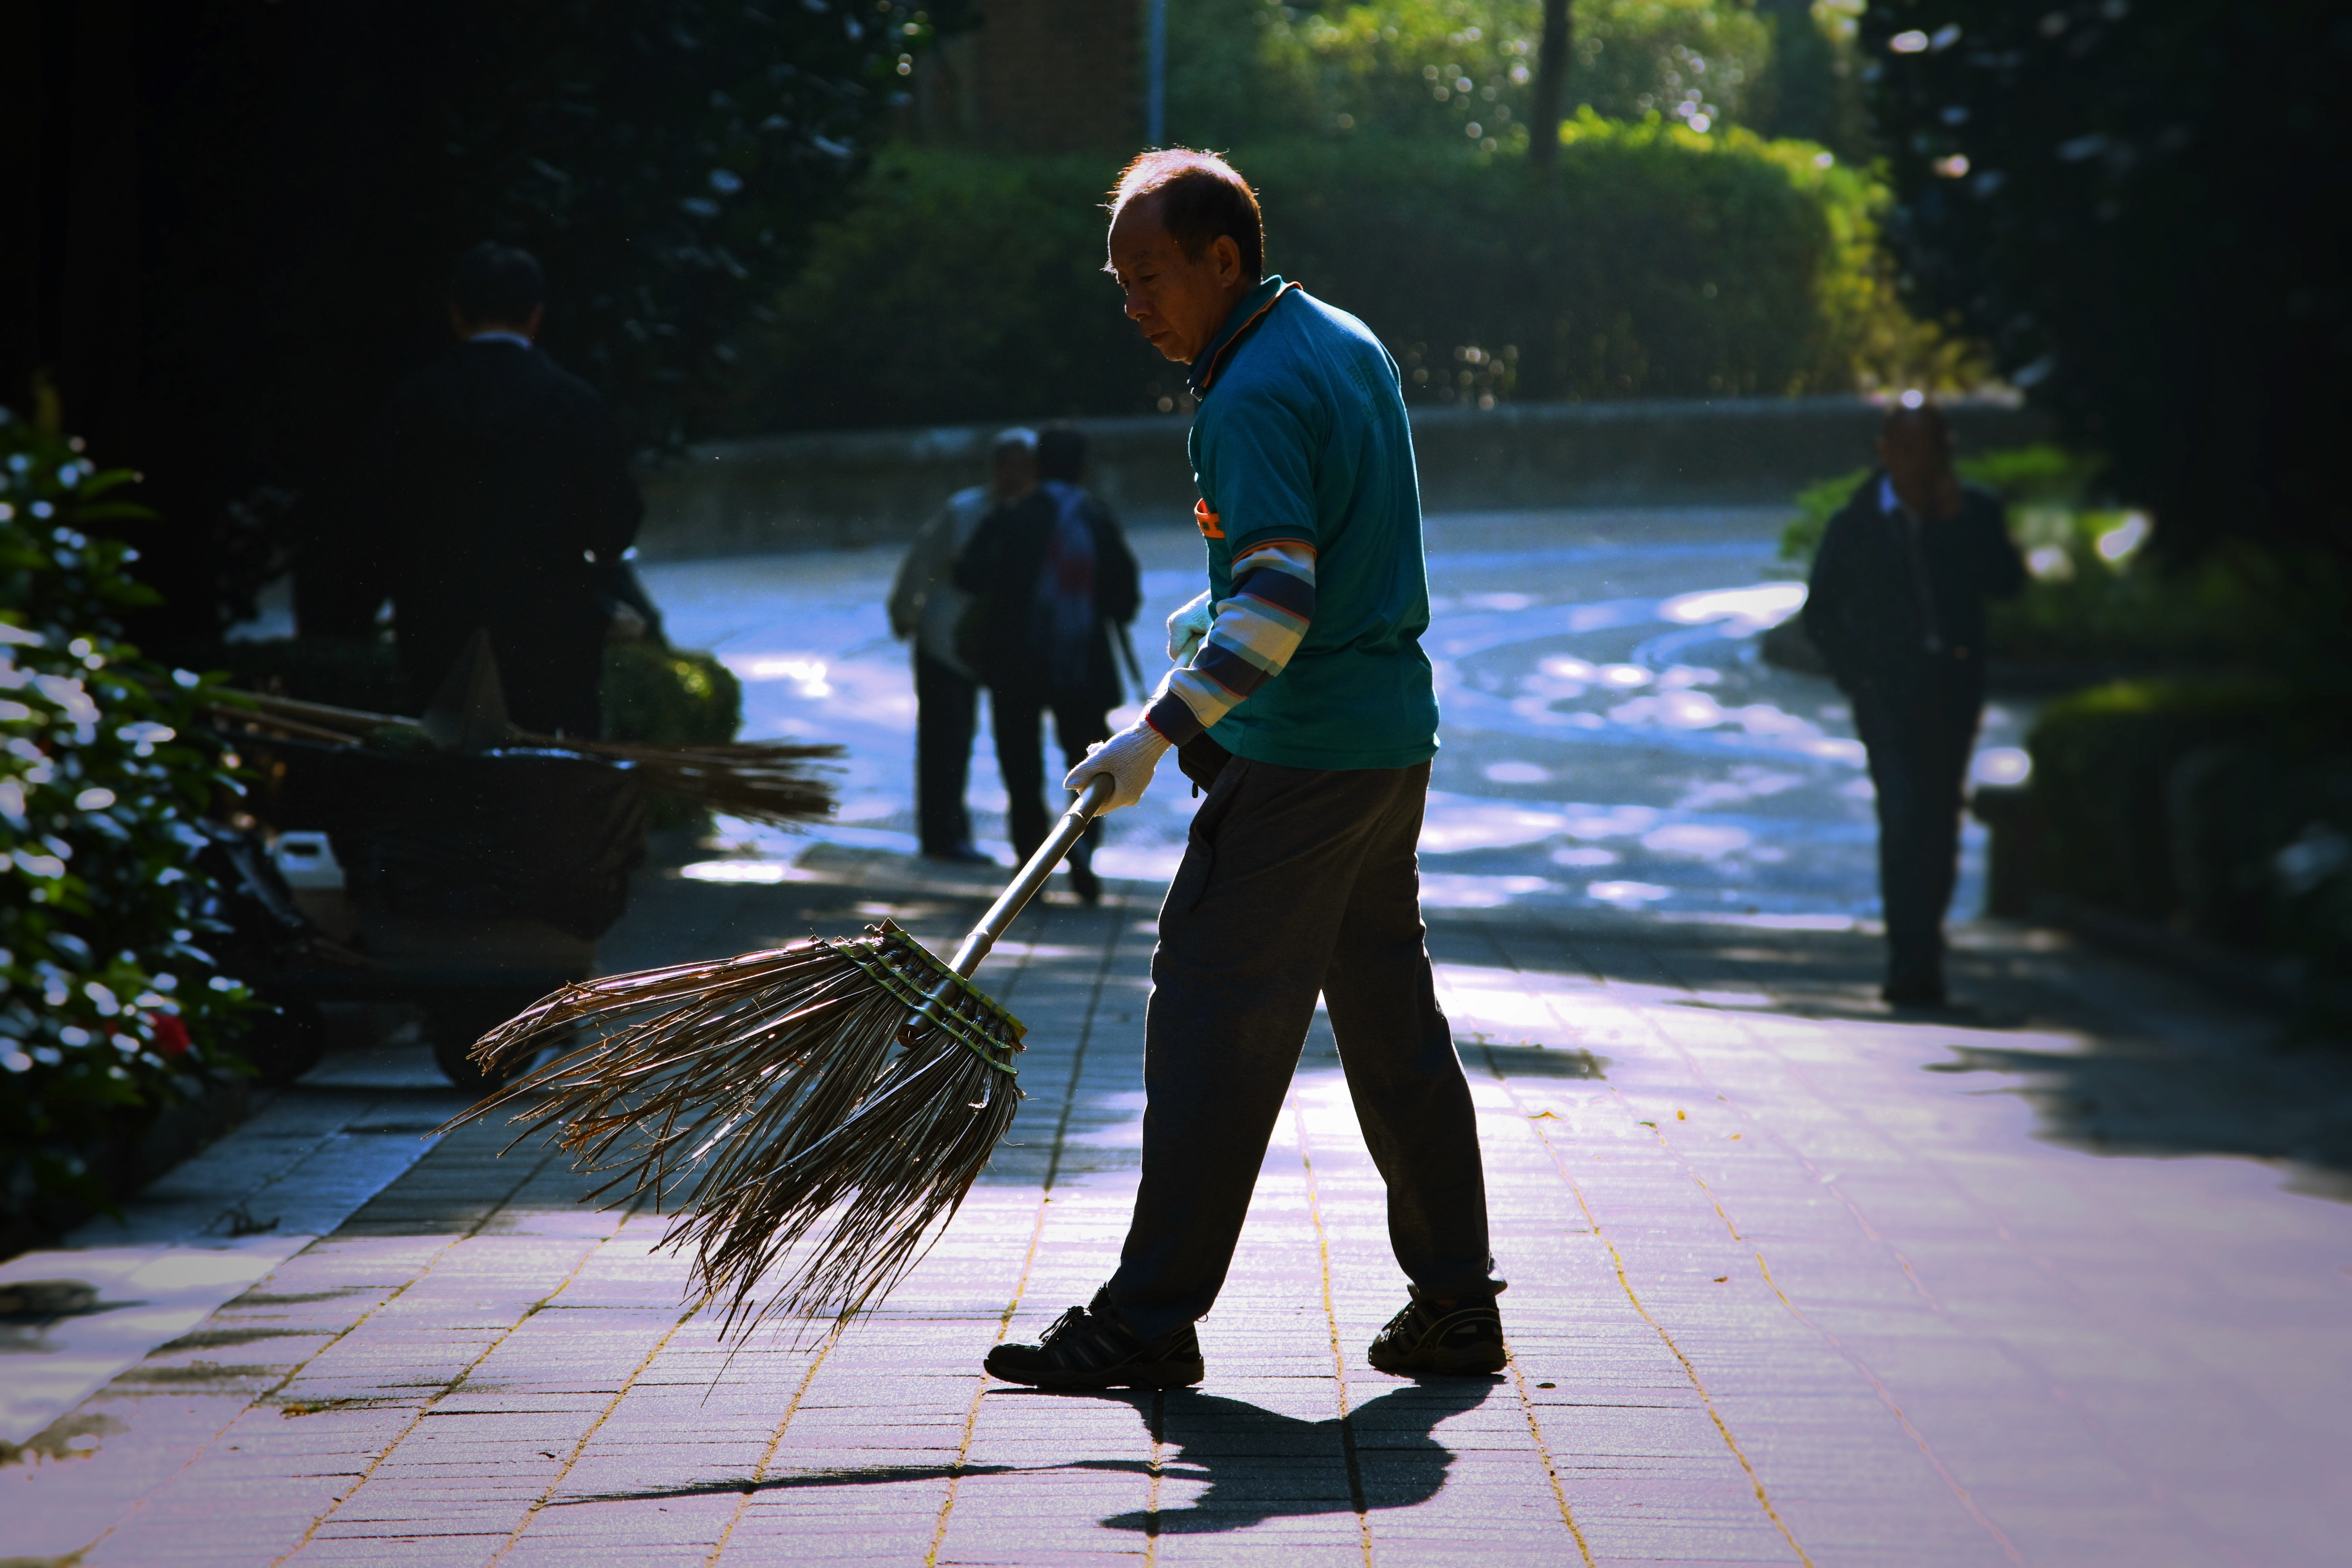 man holding broom sweeping on pavement